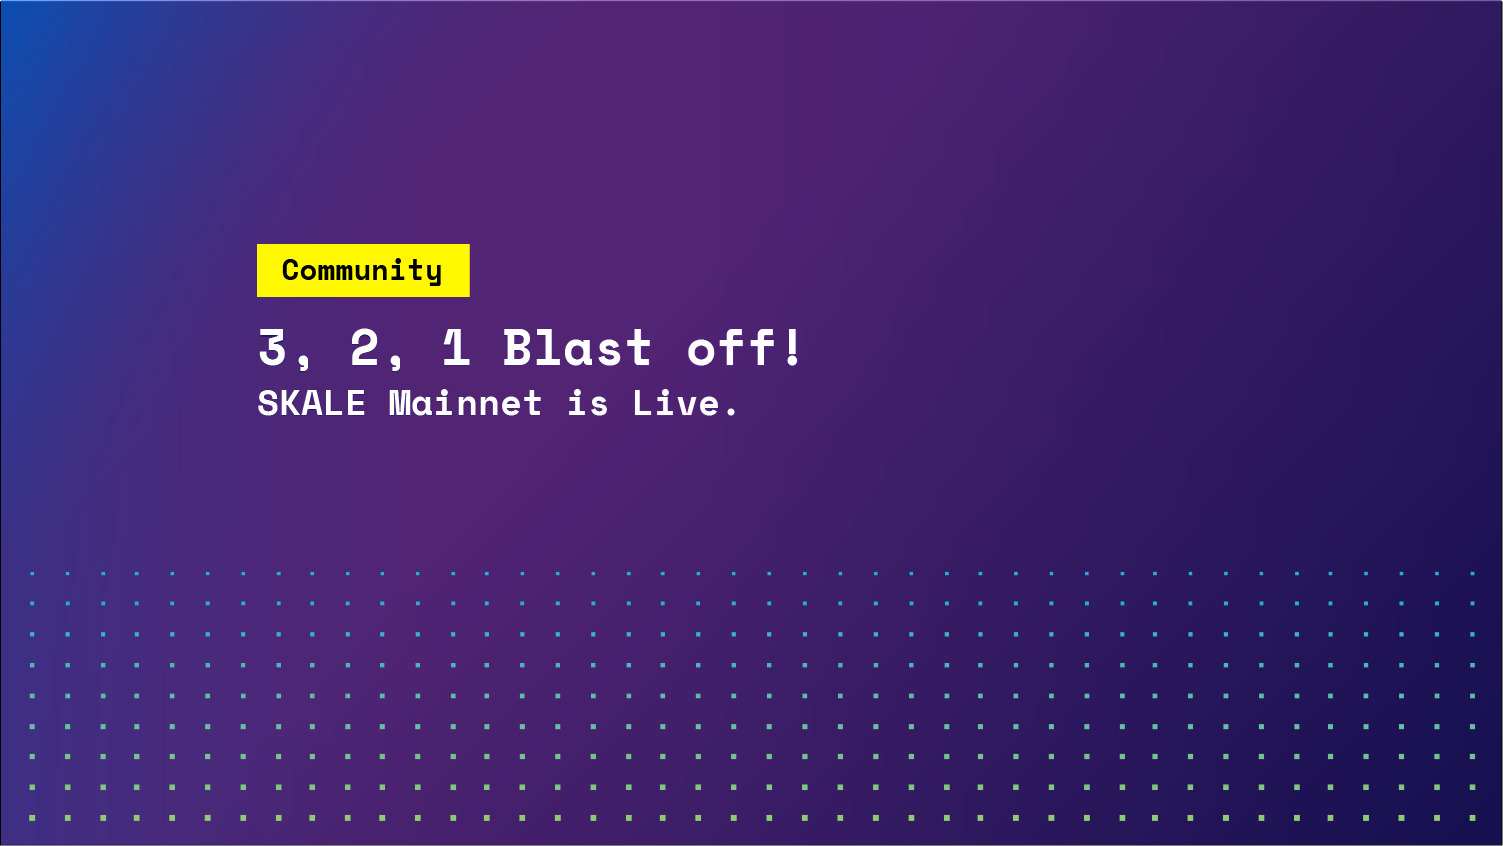 3,2,1 Blast Off! SKALE Mainnet is live.